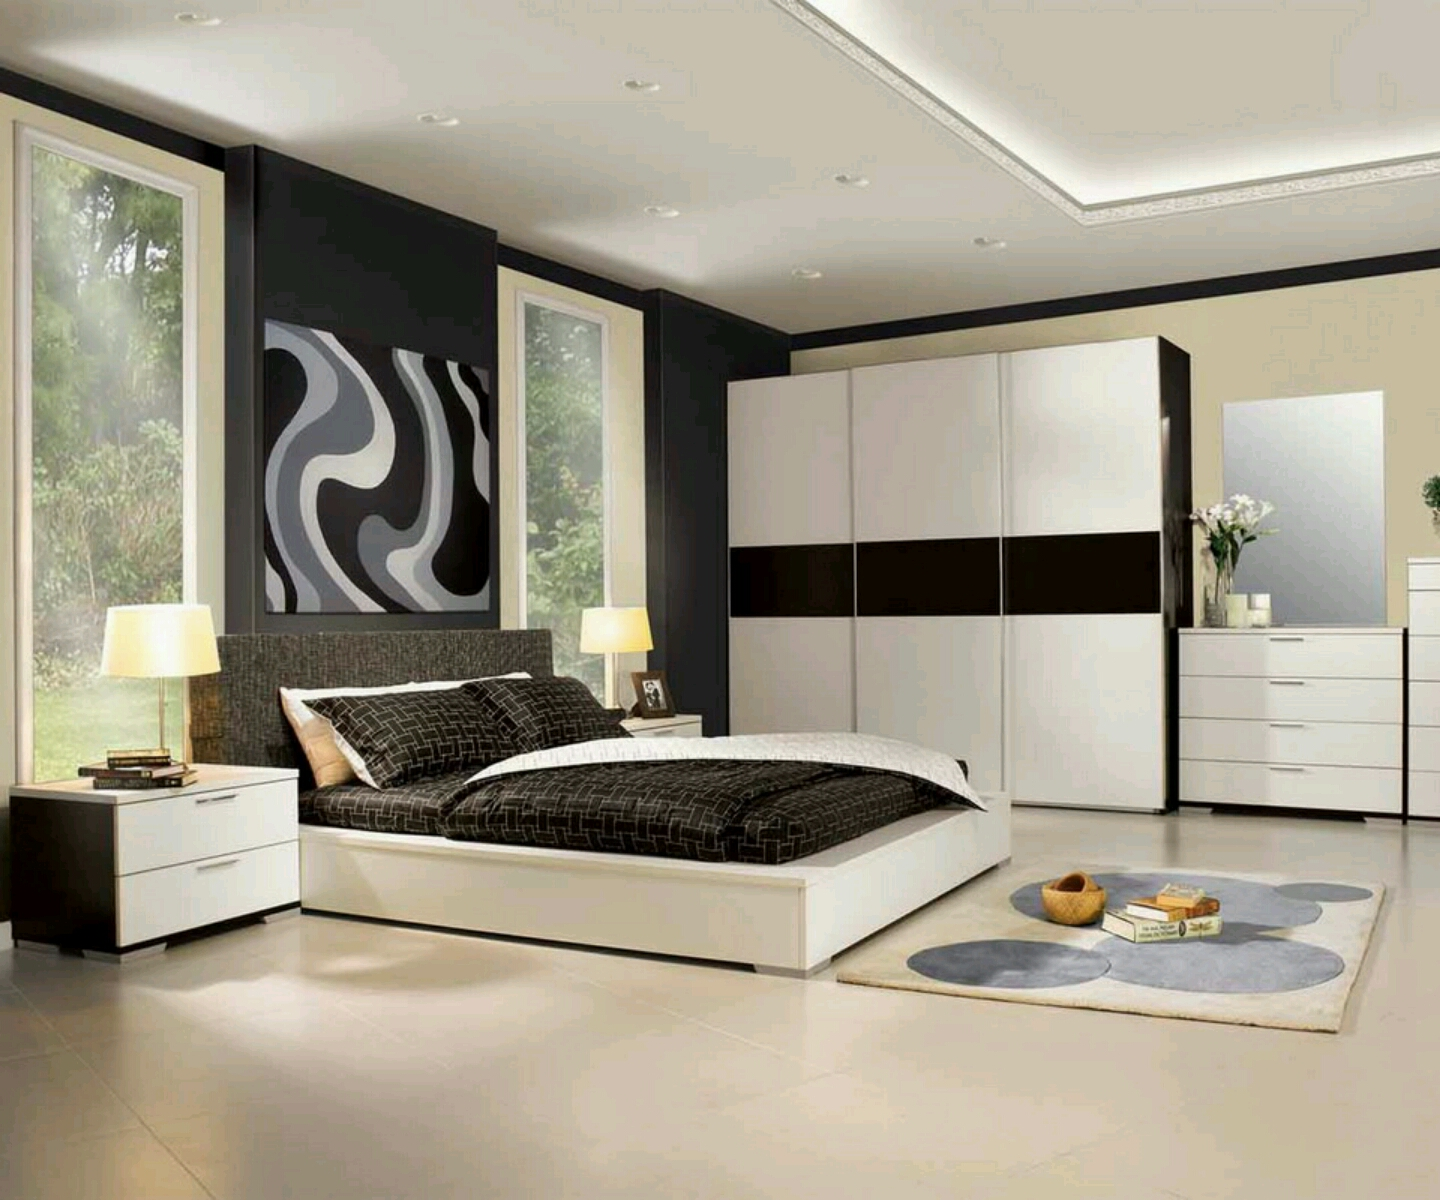 Outstanding Modern Bedroom Furniture Design 1440 x 1200 · 911 kB · jpeg